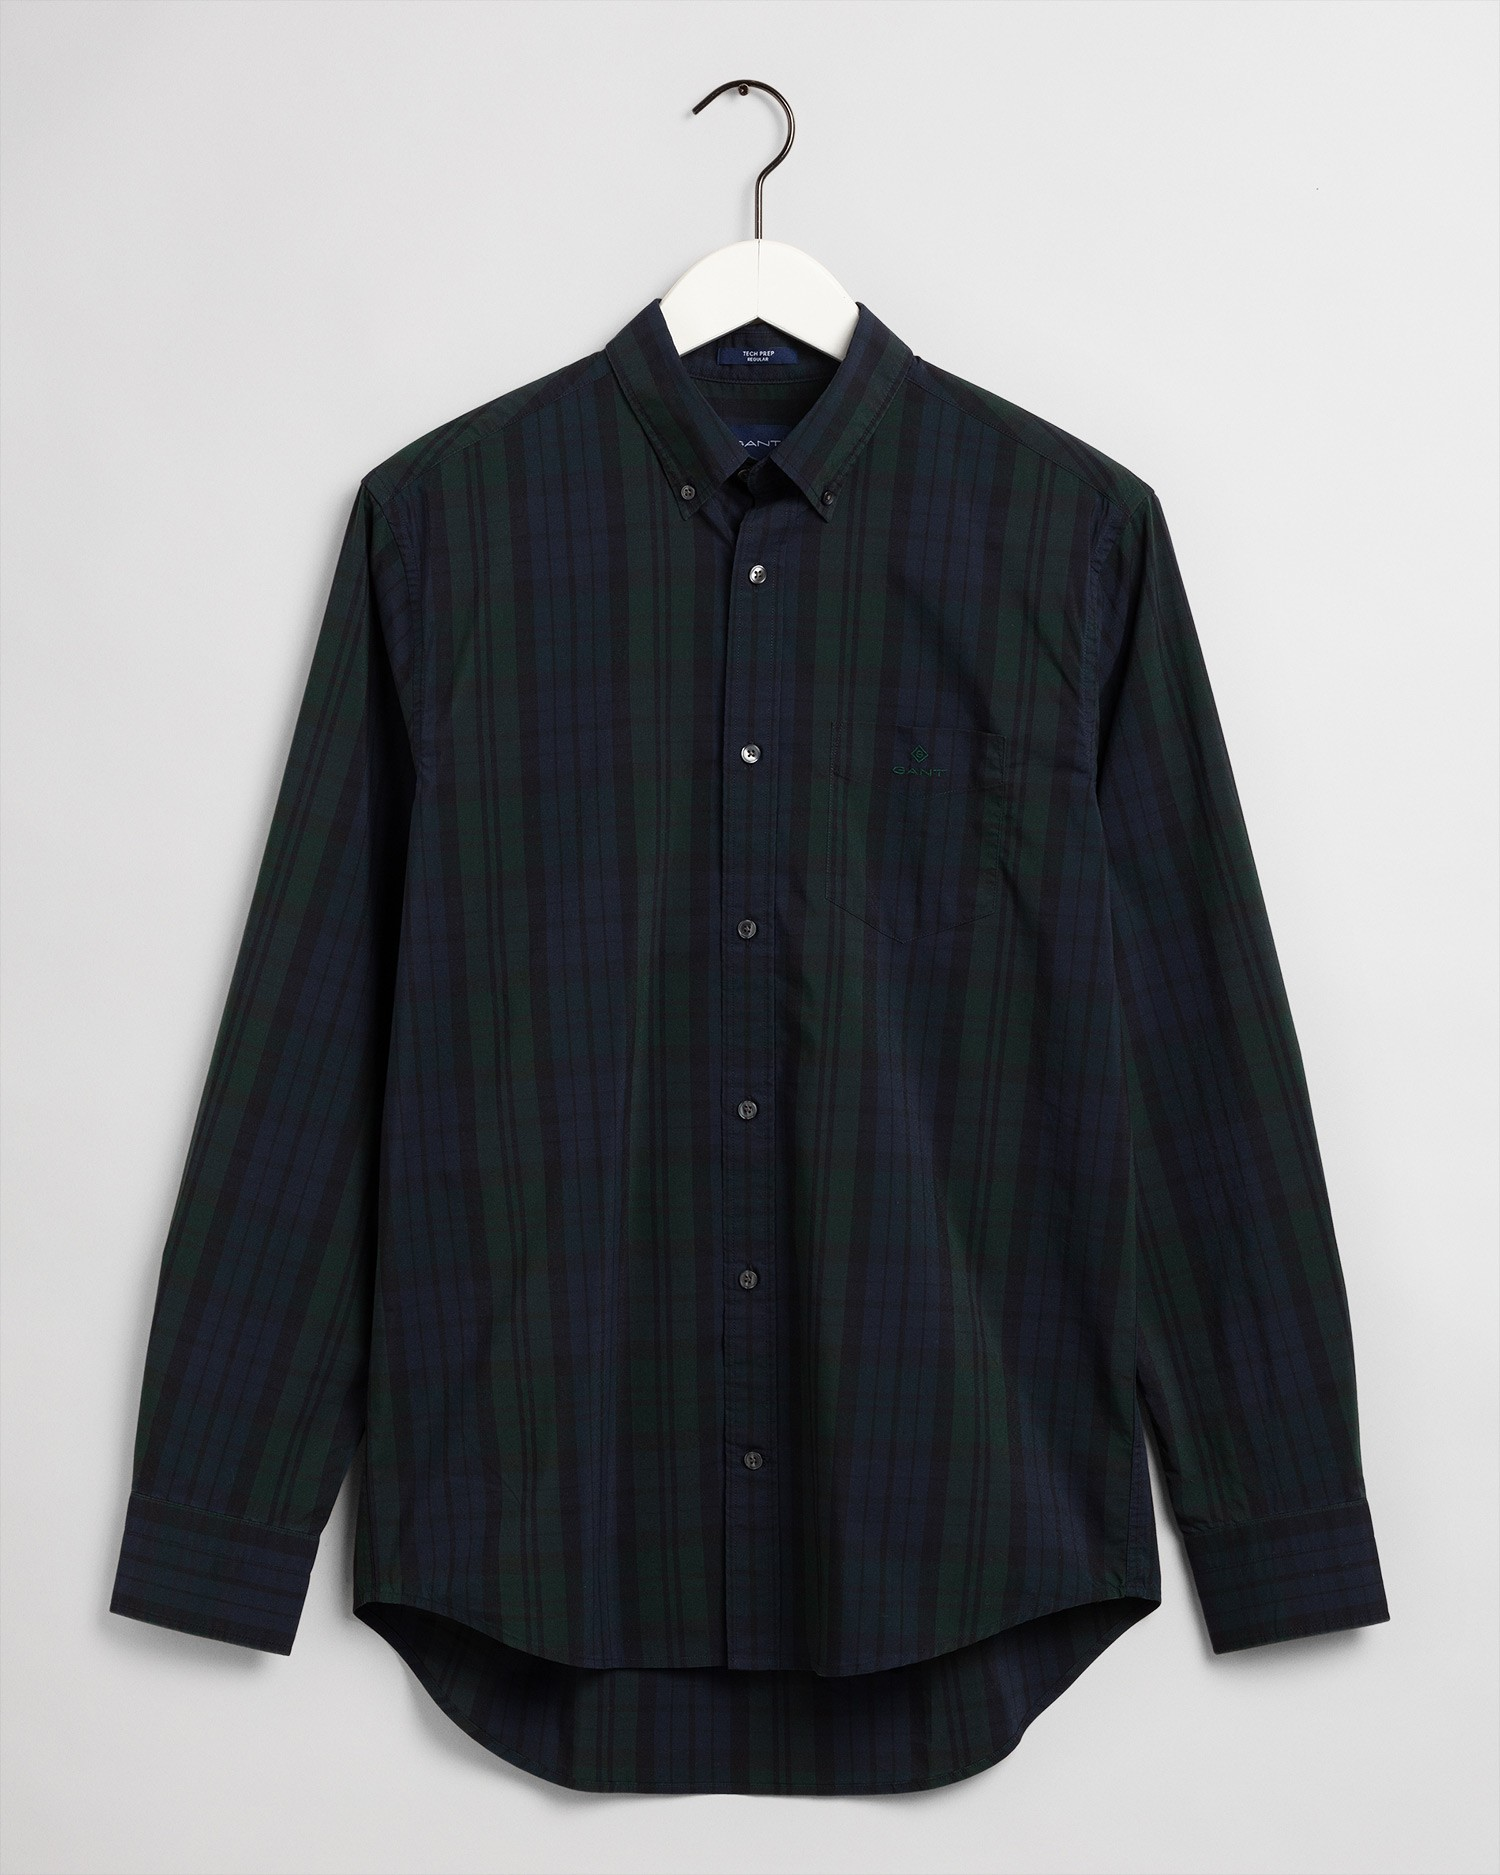 GANT Men's Tp Bc Winter Check Regular Fit Broadcloth Shirts - 3030130